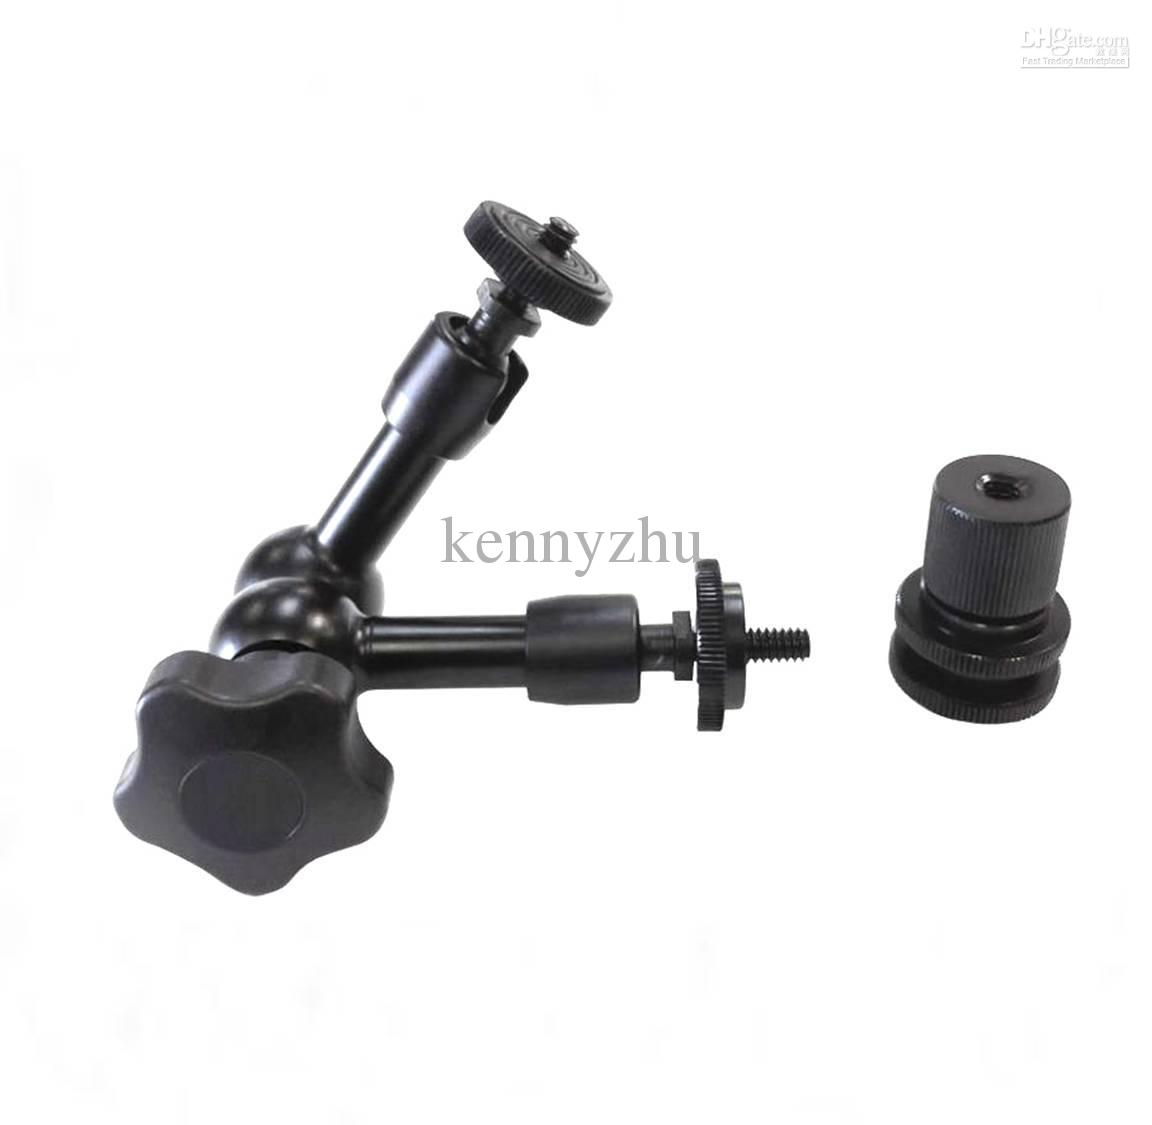 Articulating Magic Arm 7'' Inch + Large Super Clamp 1/4'' 3/8'' For DSLR Camera Rig Led Light Lcd Field Monitor